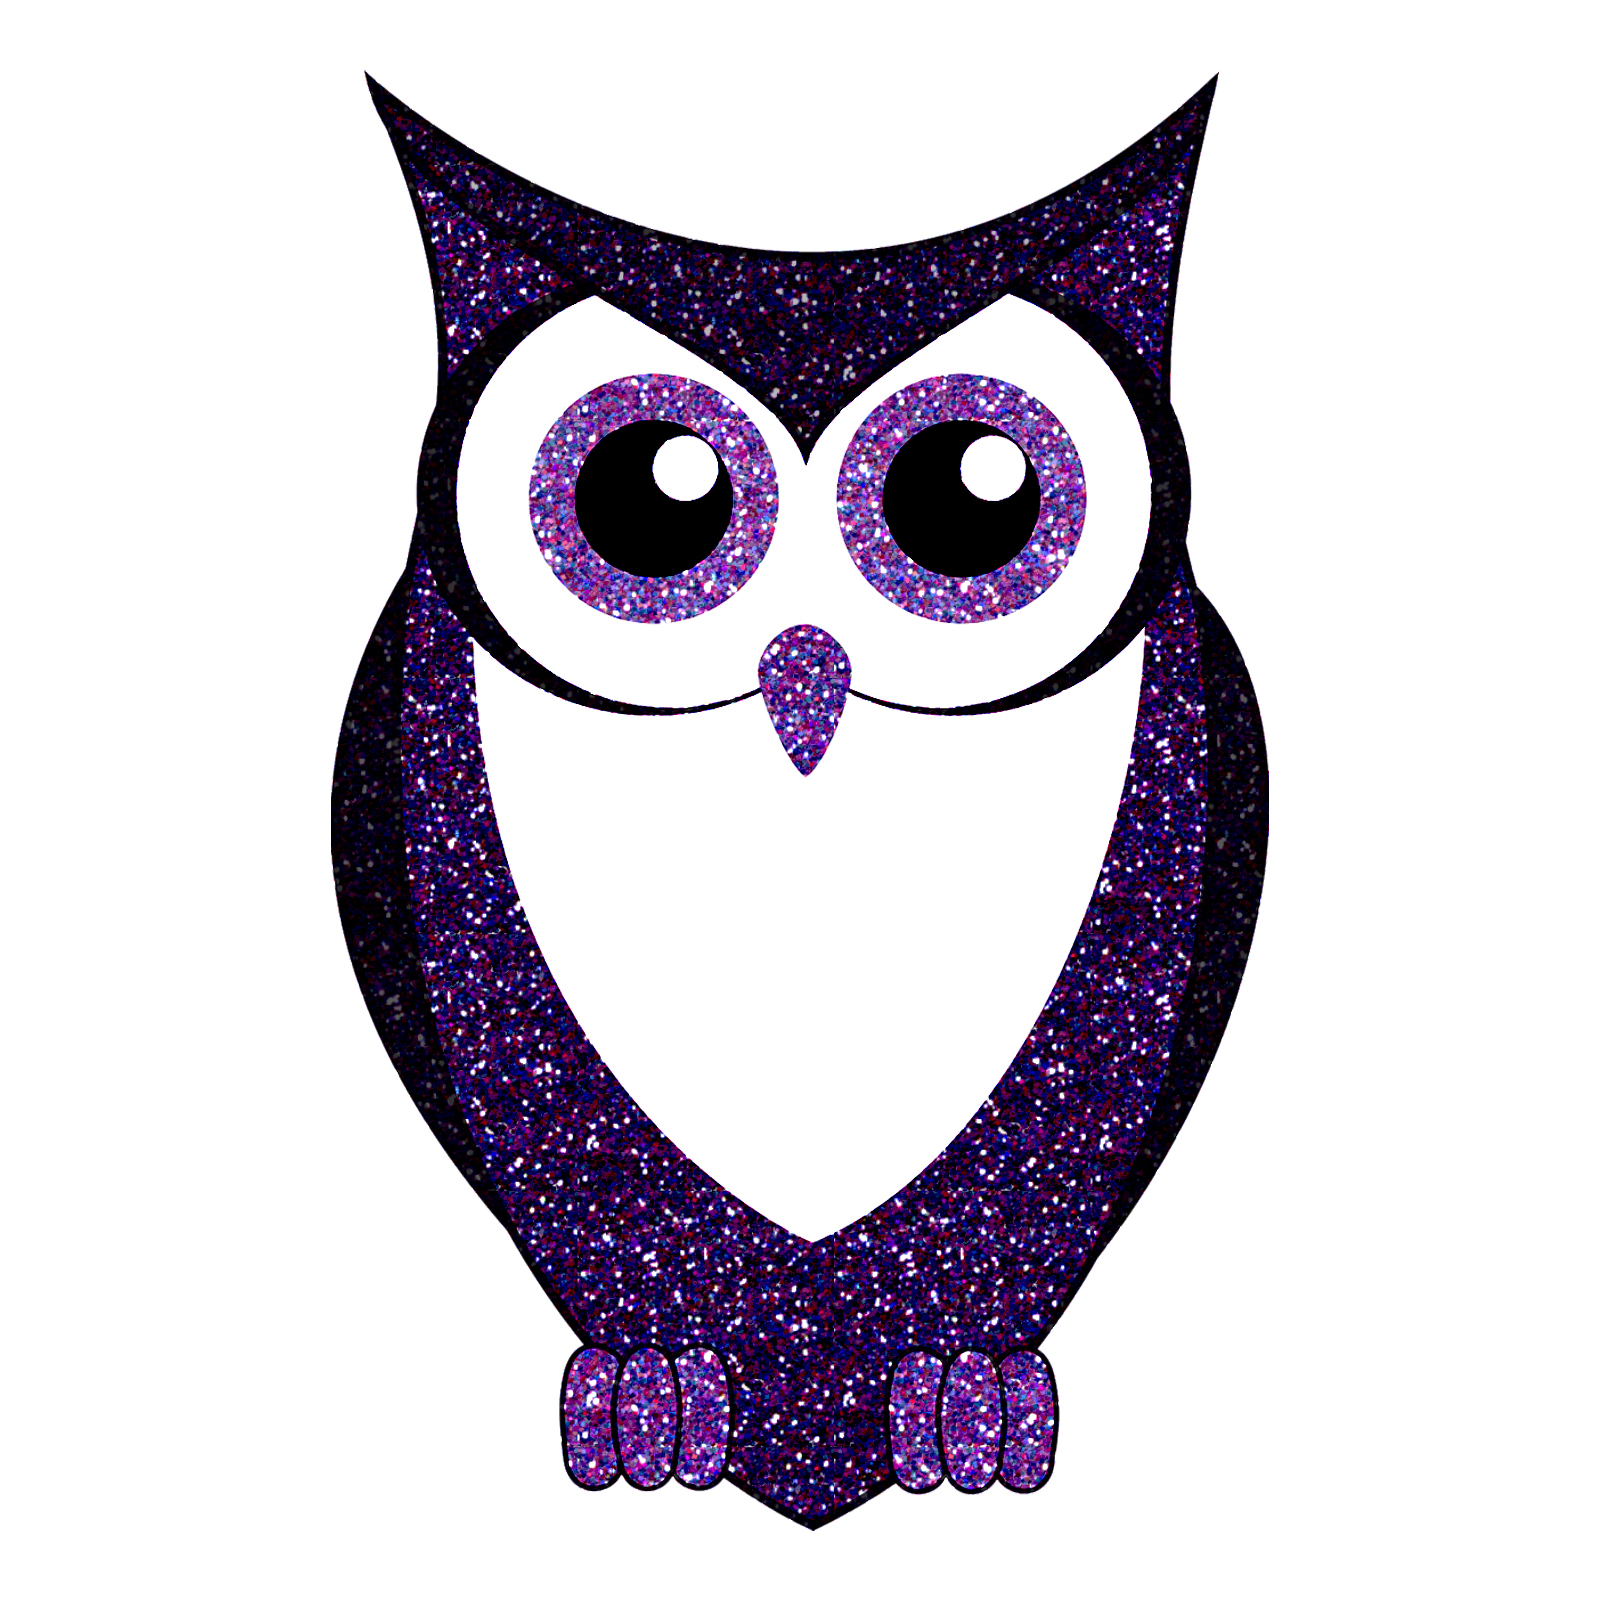 1600x1600 Glitter Owl Purple Blue Silhouette Animal Sticker 5